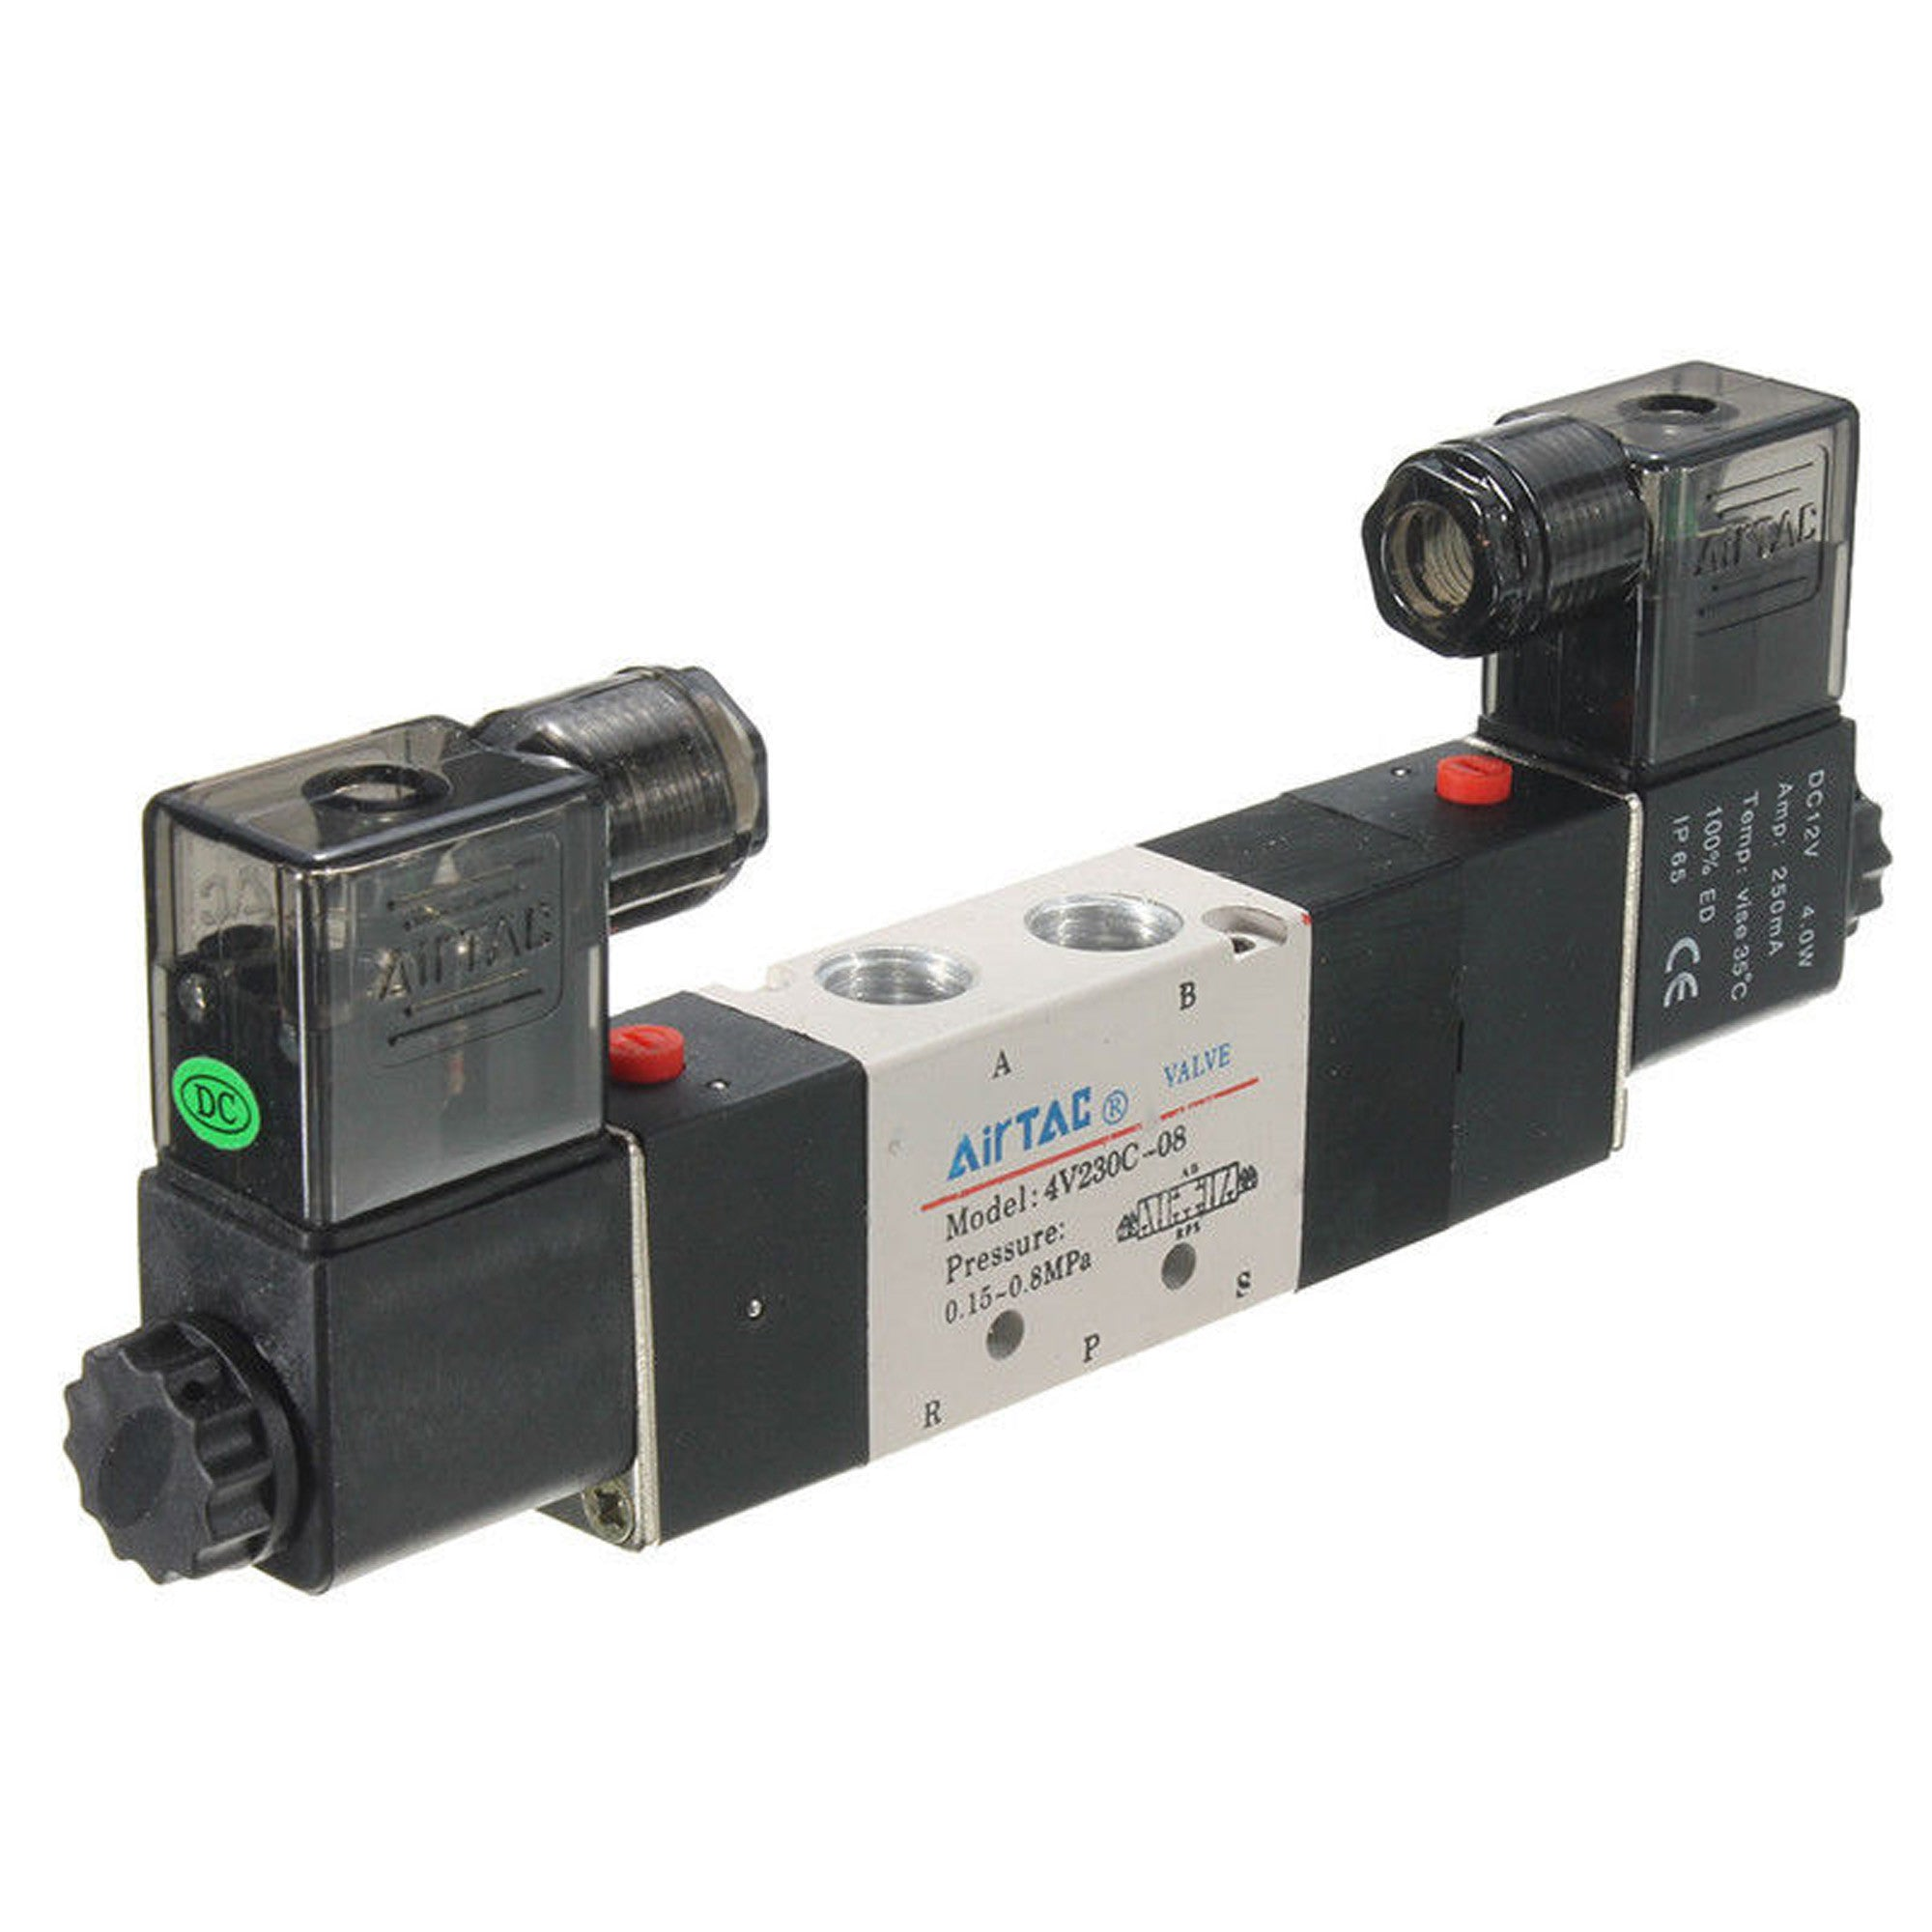 4V230C-08 DC12V Double Head 3 Position 5 Way Pneumatic Solenoid Valve